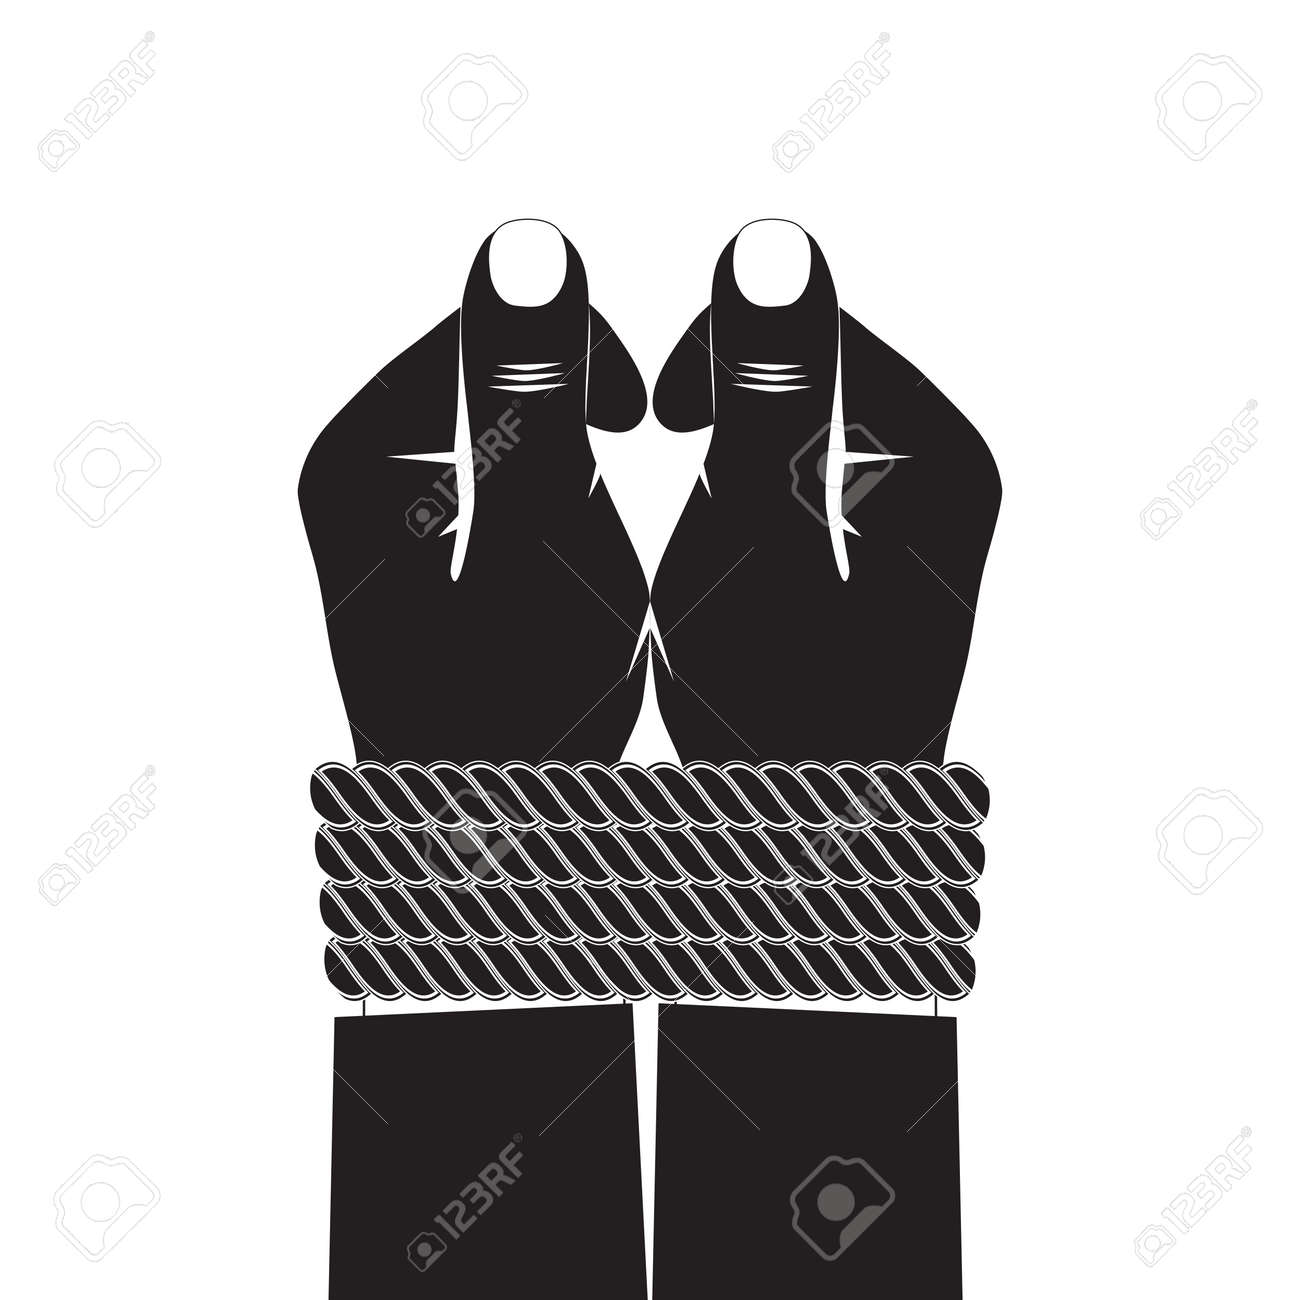 Black silhouette of the hands tied by a rope. - 54283321